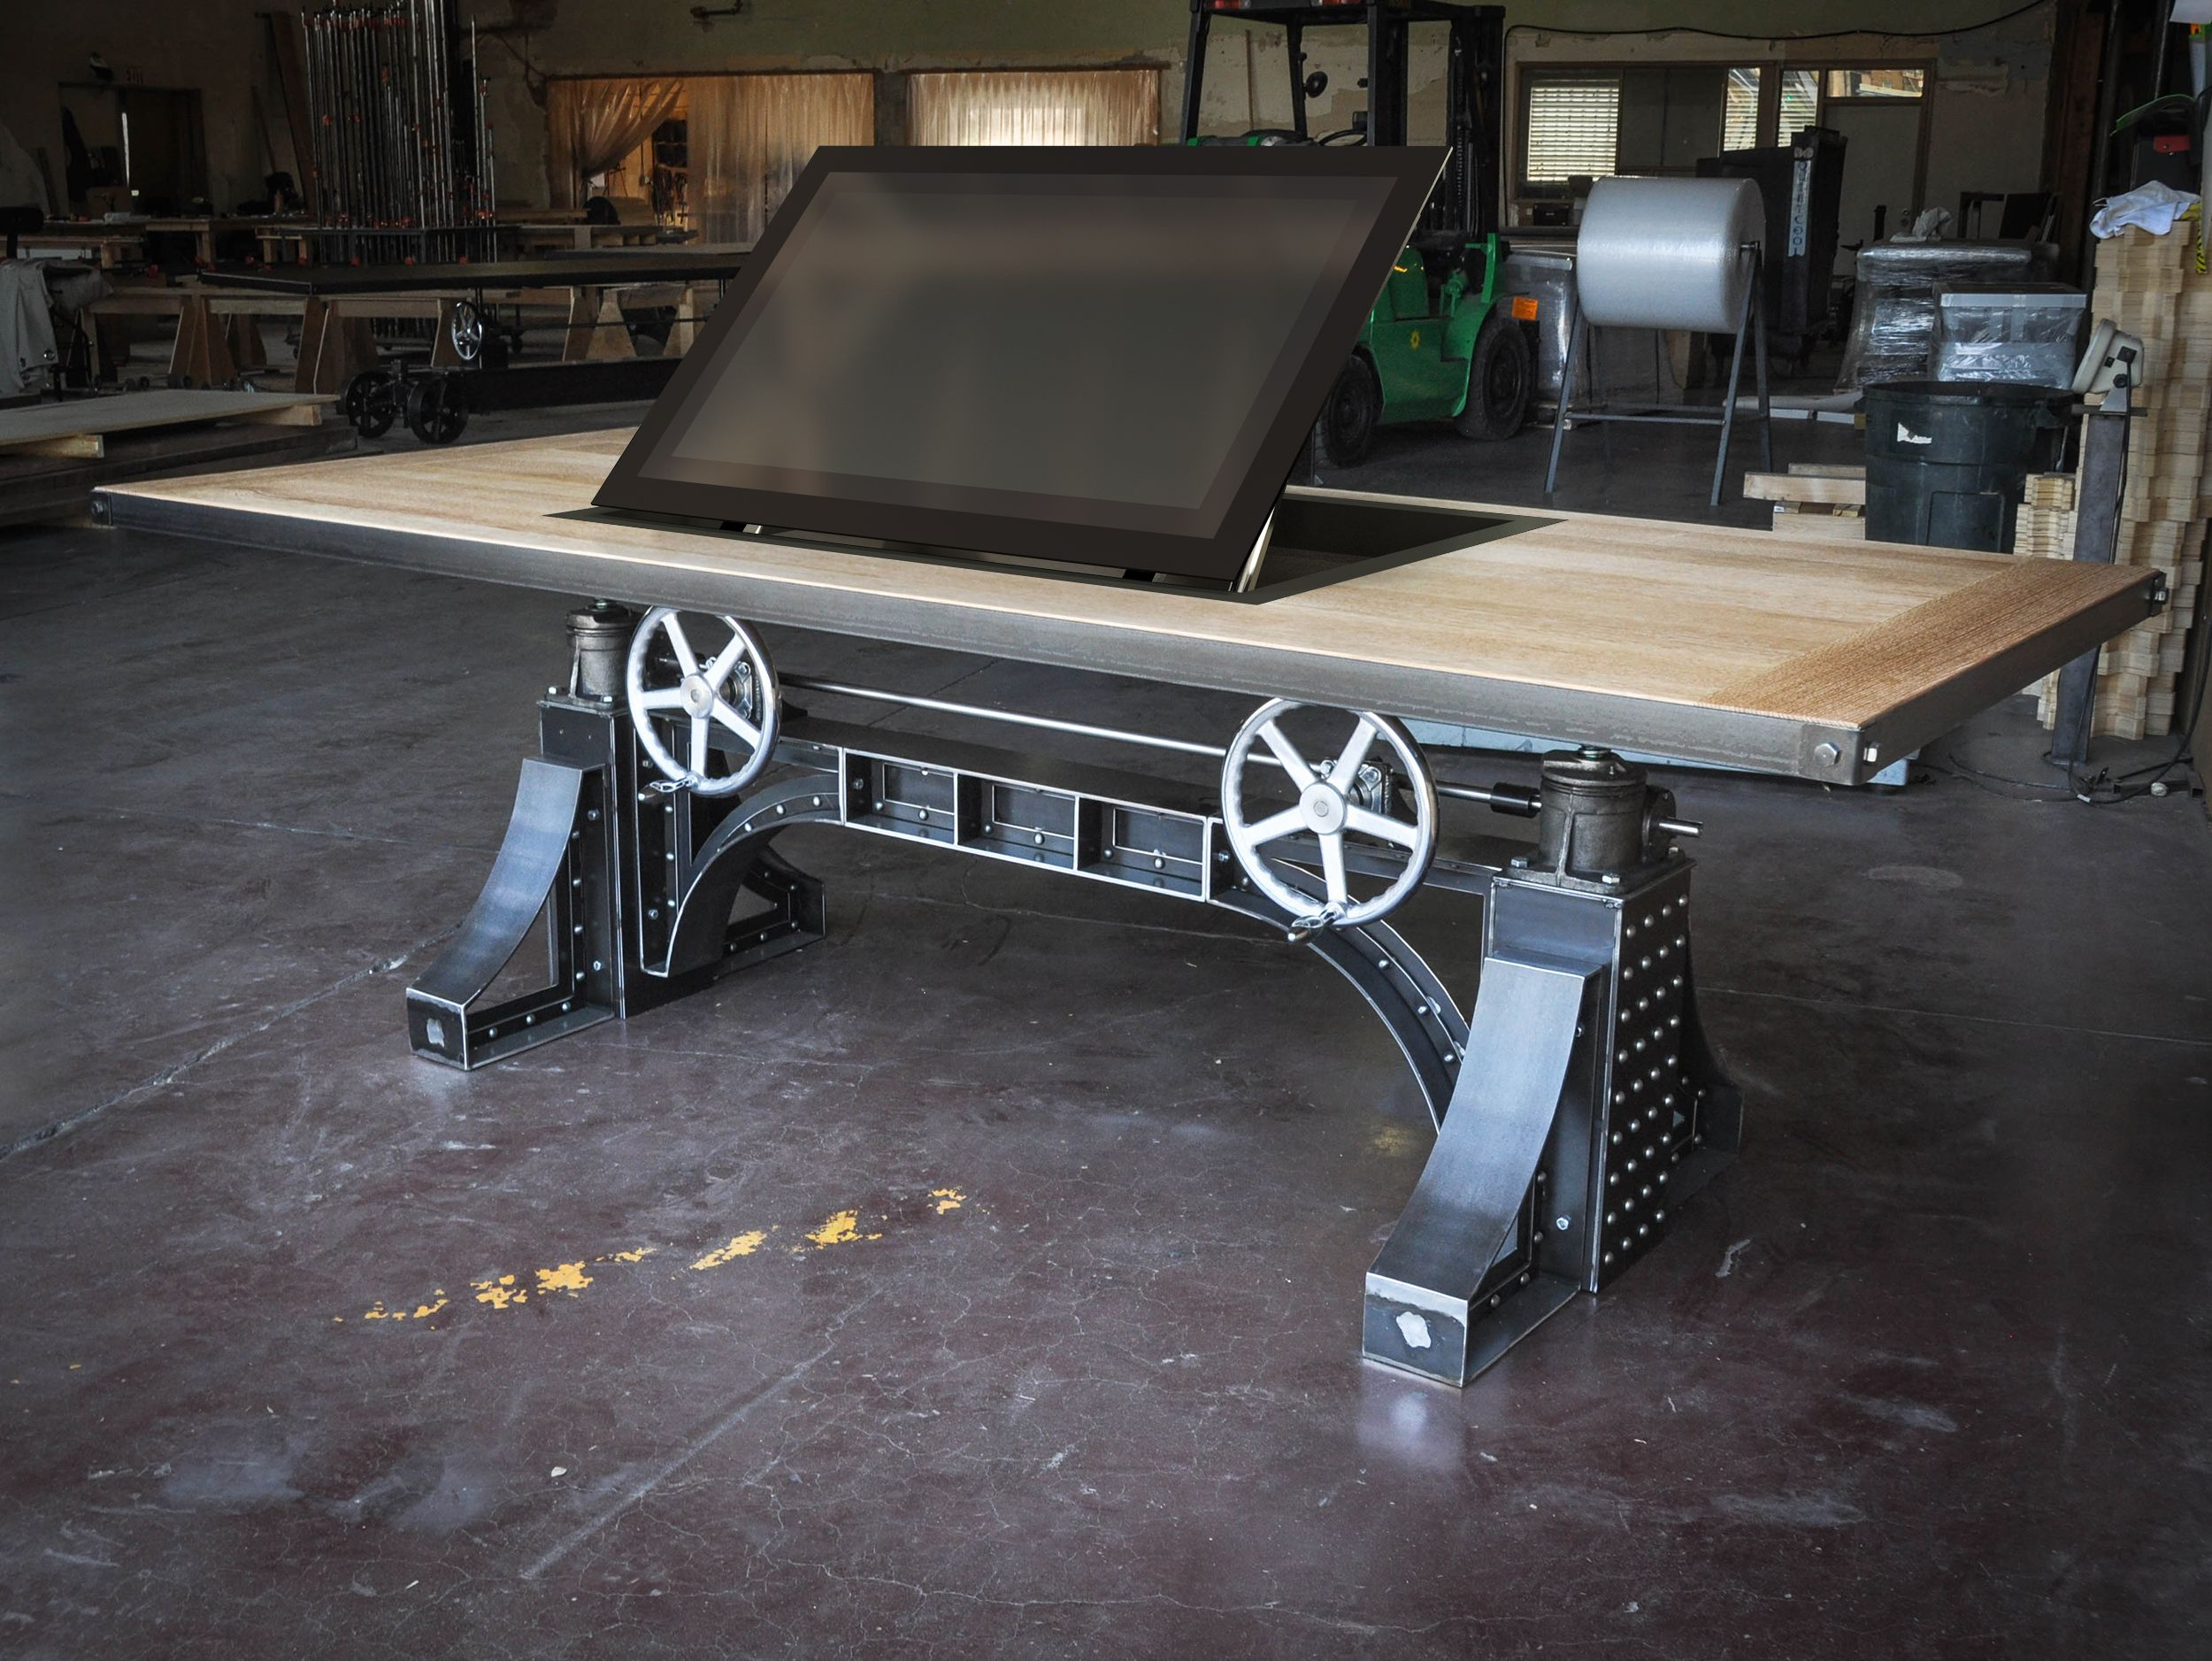 Bronx Crank Table With A Giant Adjustable Touch Screen U003e Vintage Industrial.